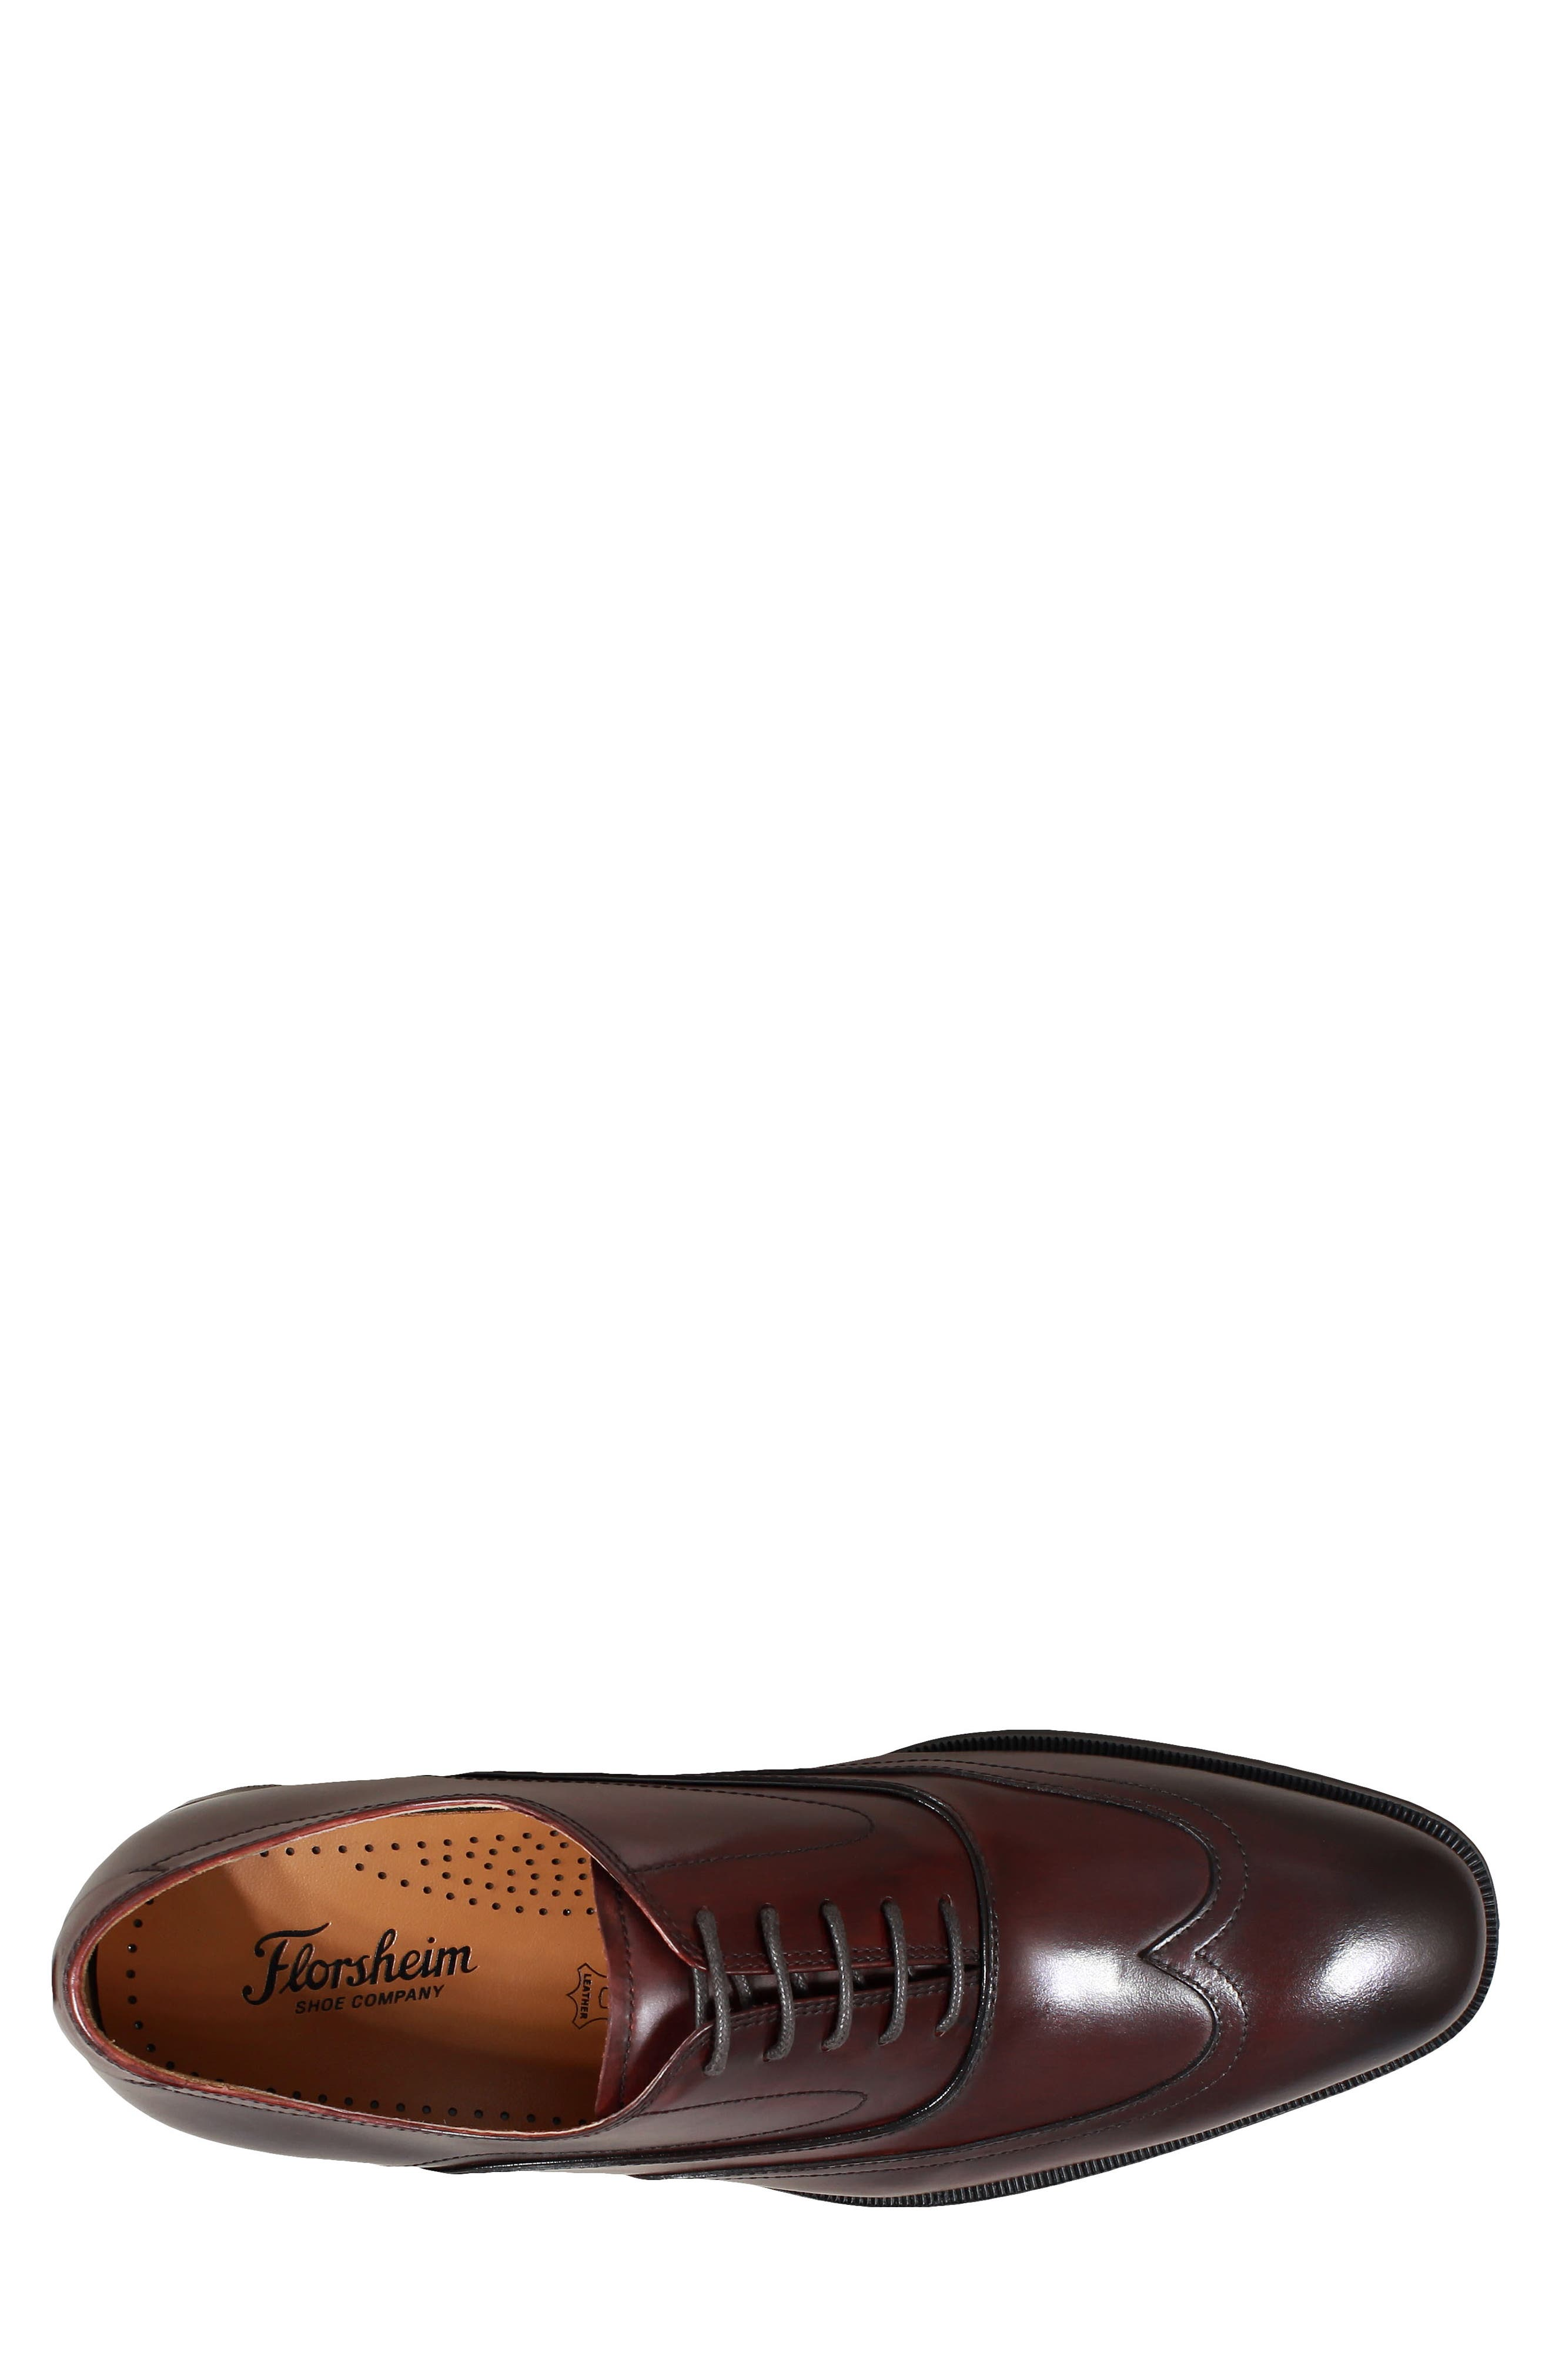 Belfast Wingtip,                             Alternate thumbnail 5, color,                             BURGUNDY LEATHER